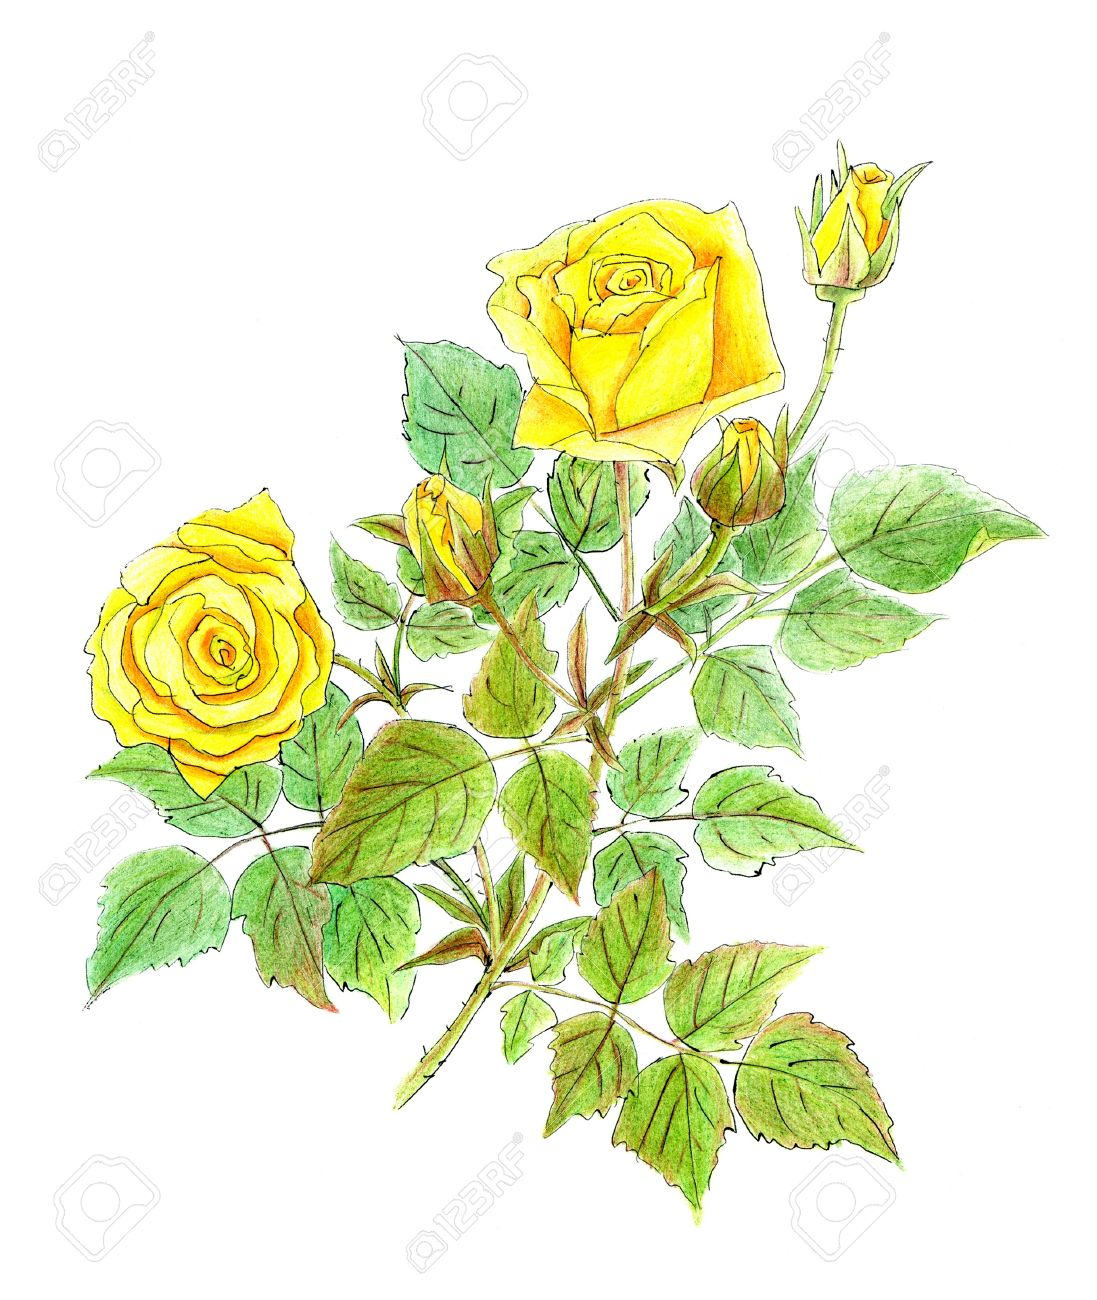 Yellow Flower Drawing at GetDrawings.com | Free for personal use ...